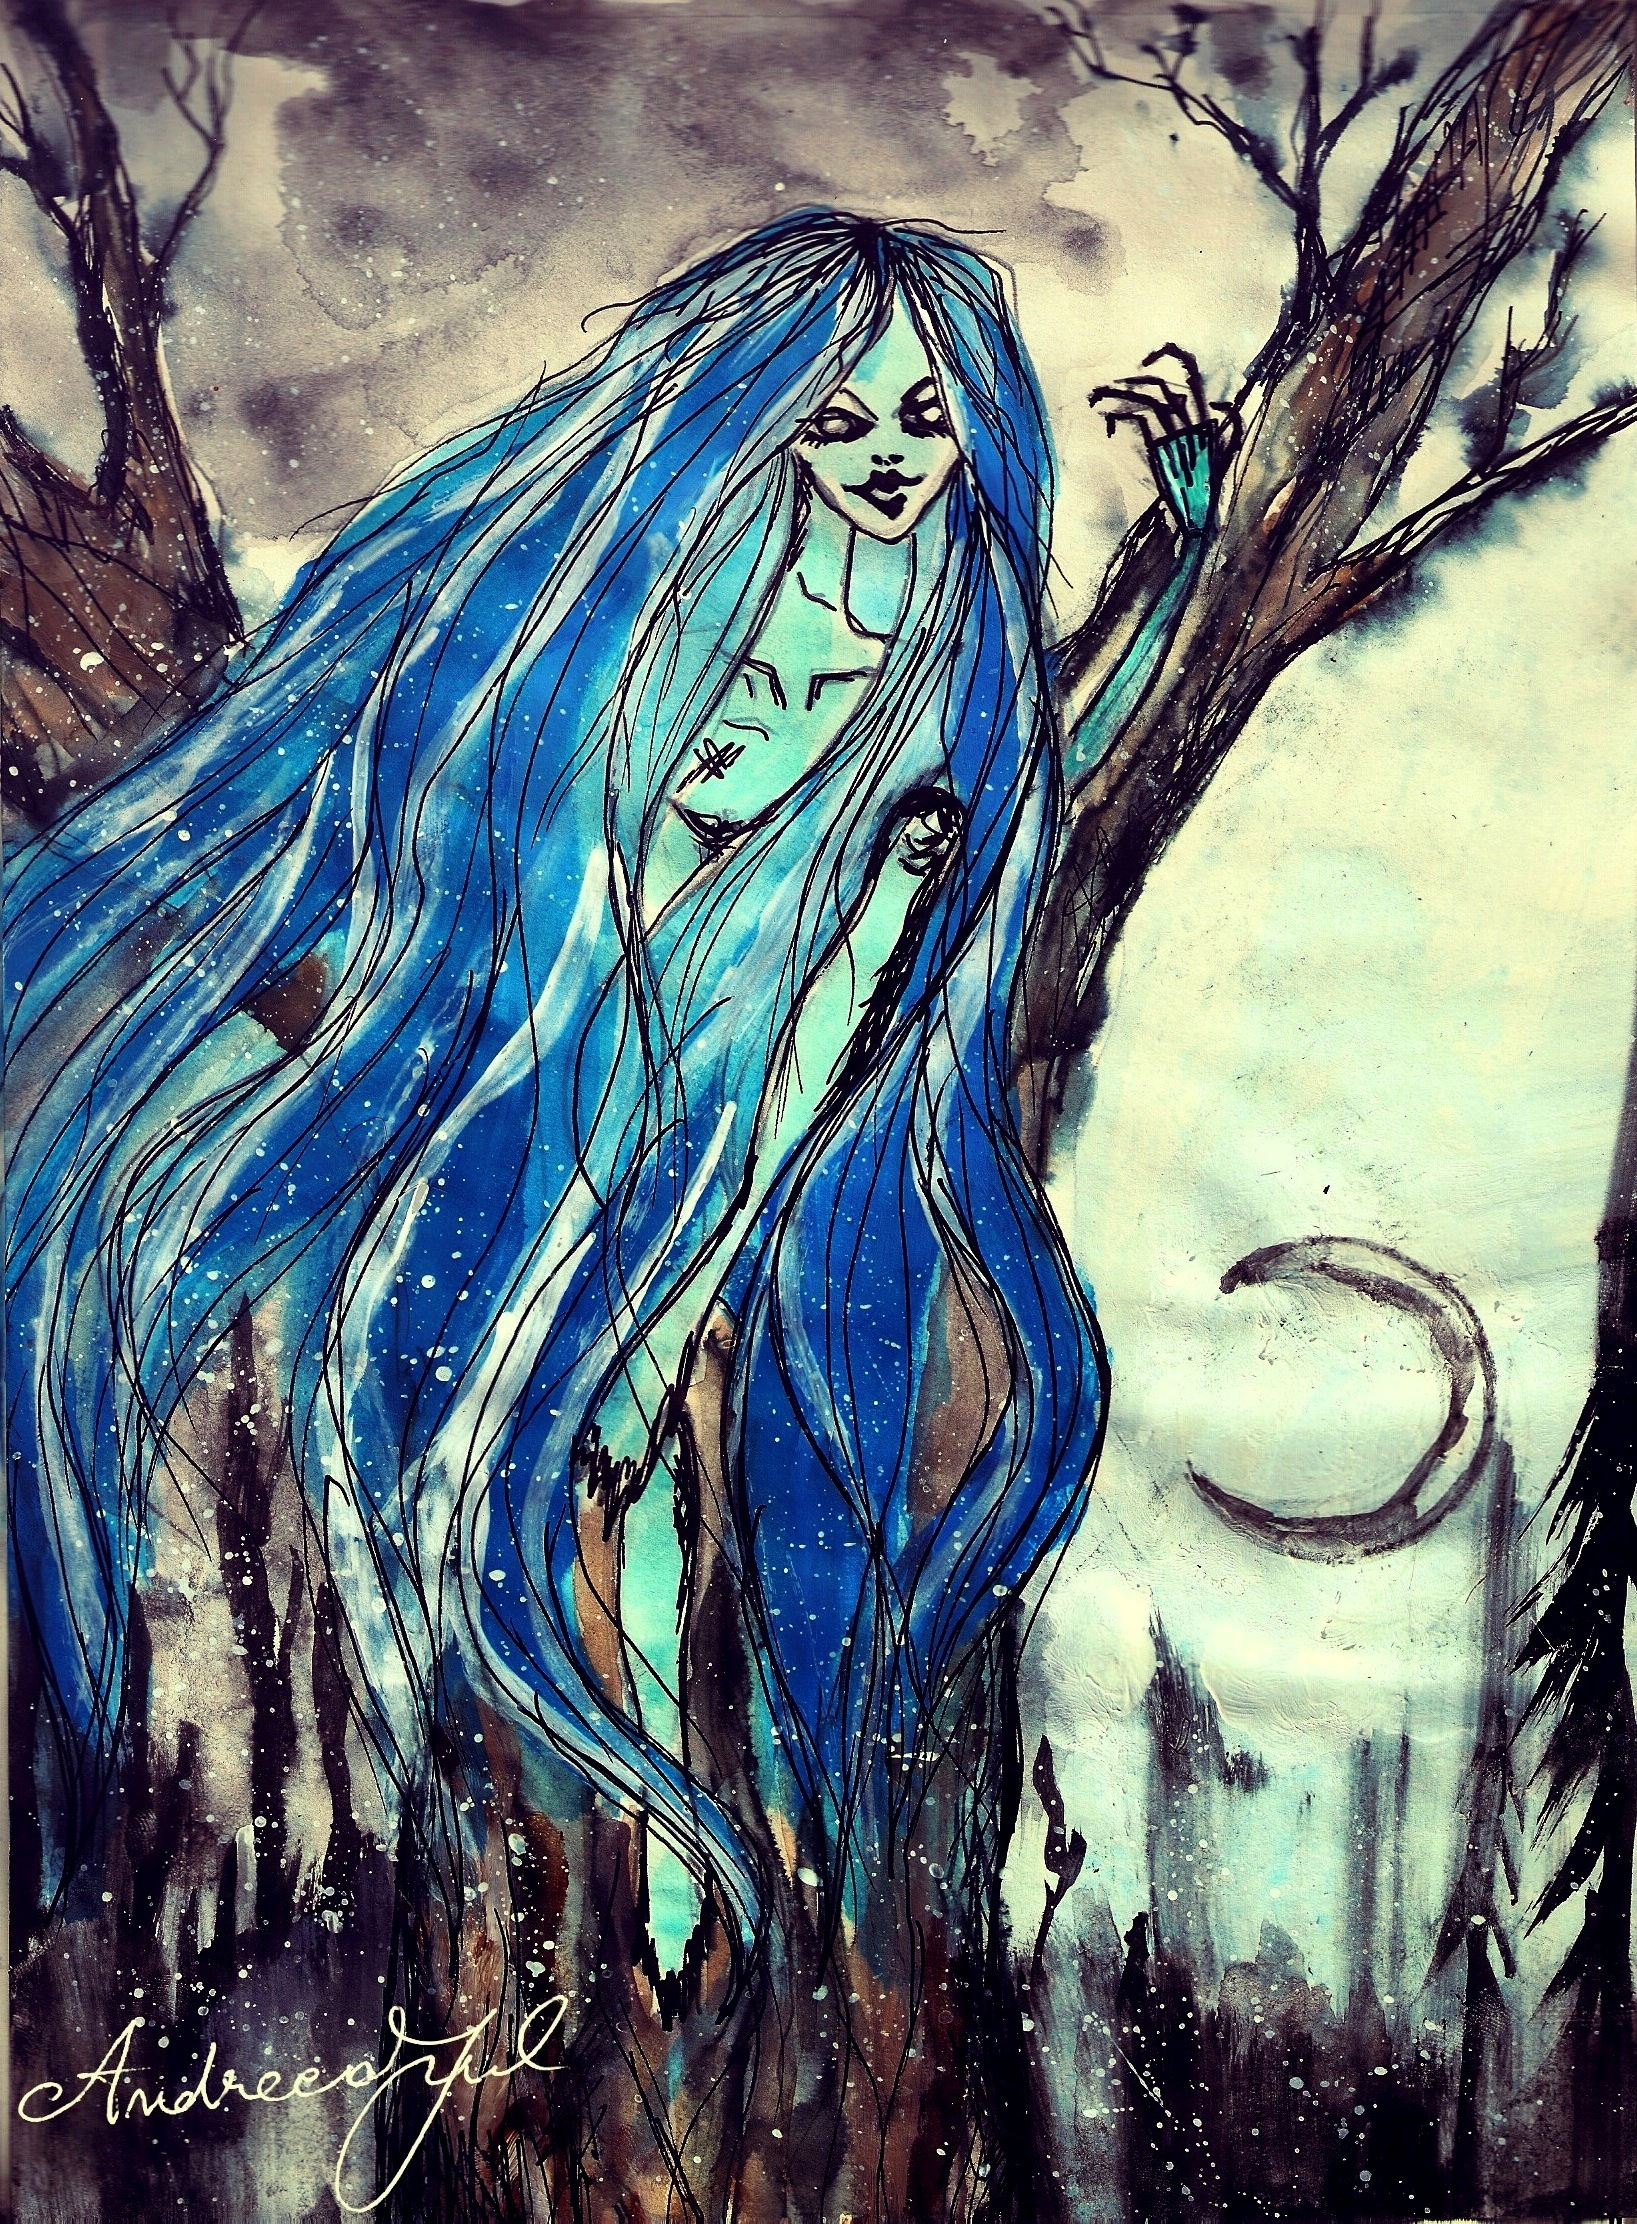 Andreea S Paintings and Drawings Rusalka